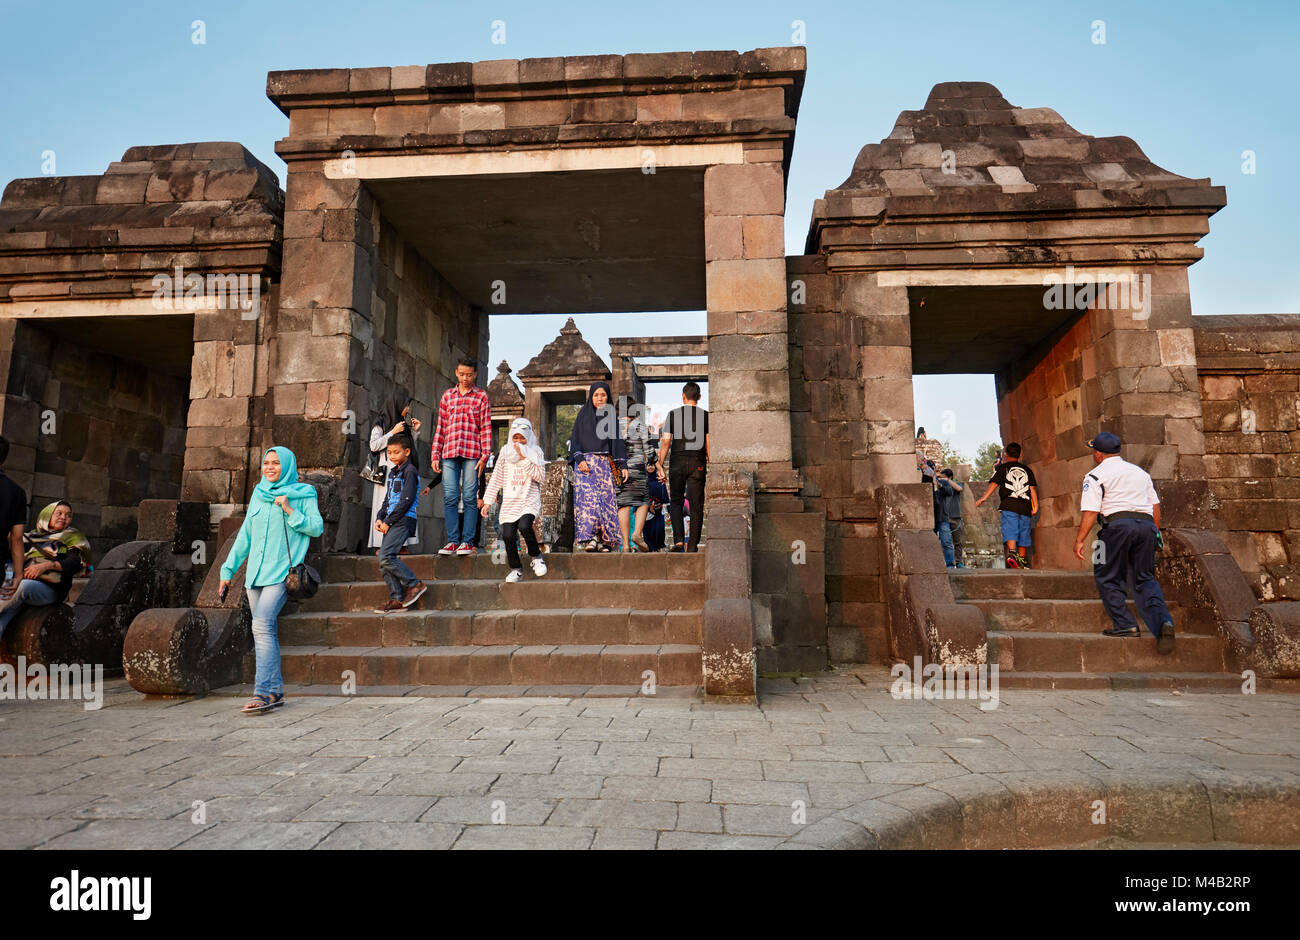 Visitors at the main gate of Ratu Boko Palace compound. Special Region of Yogyakarta, Java, Indonesia. - Stock Image